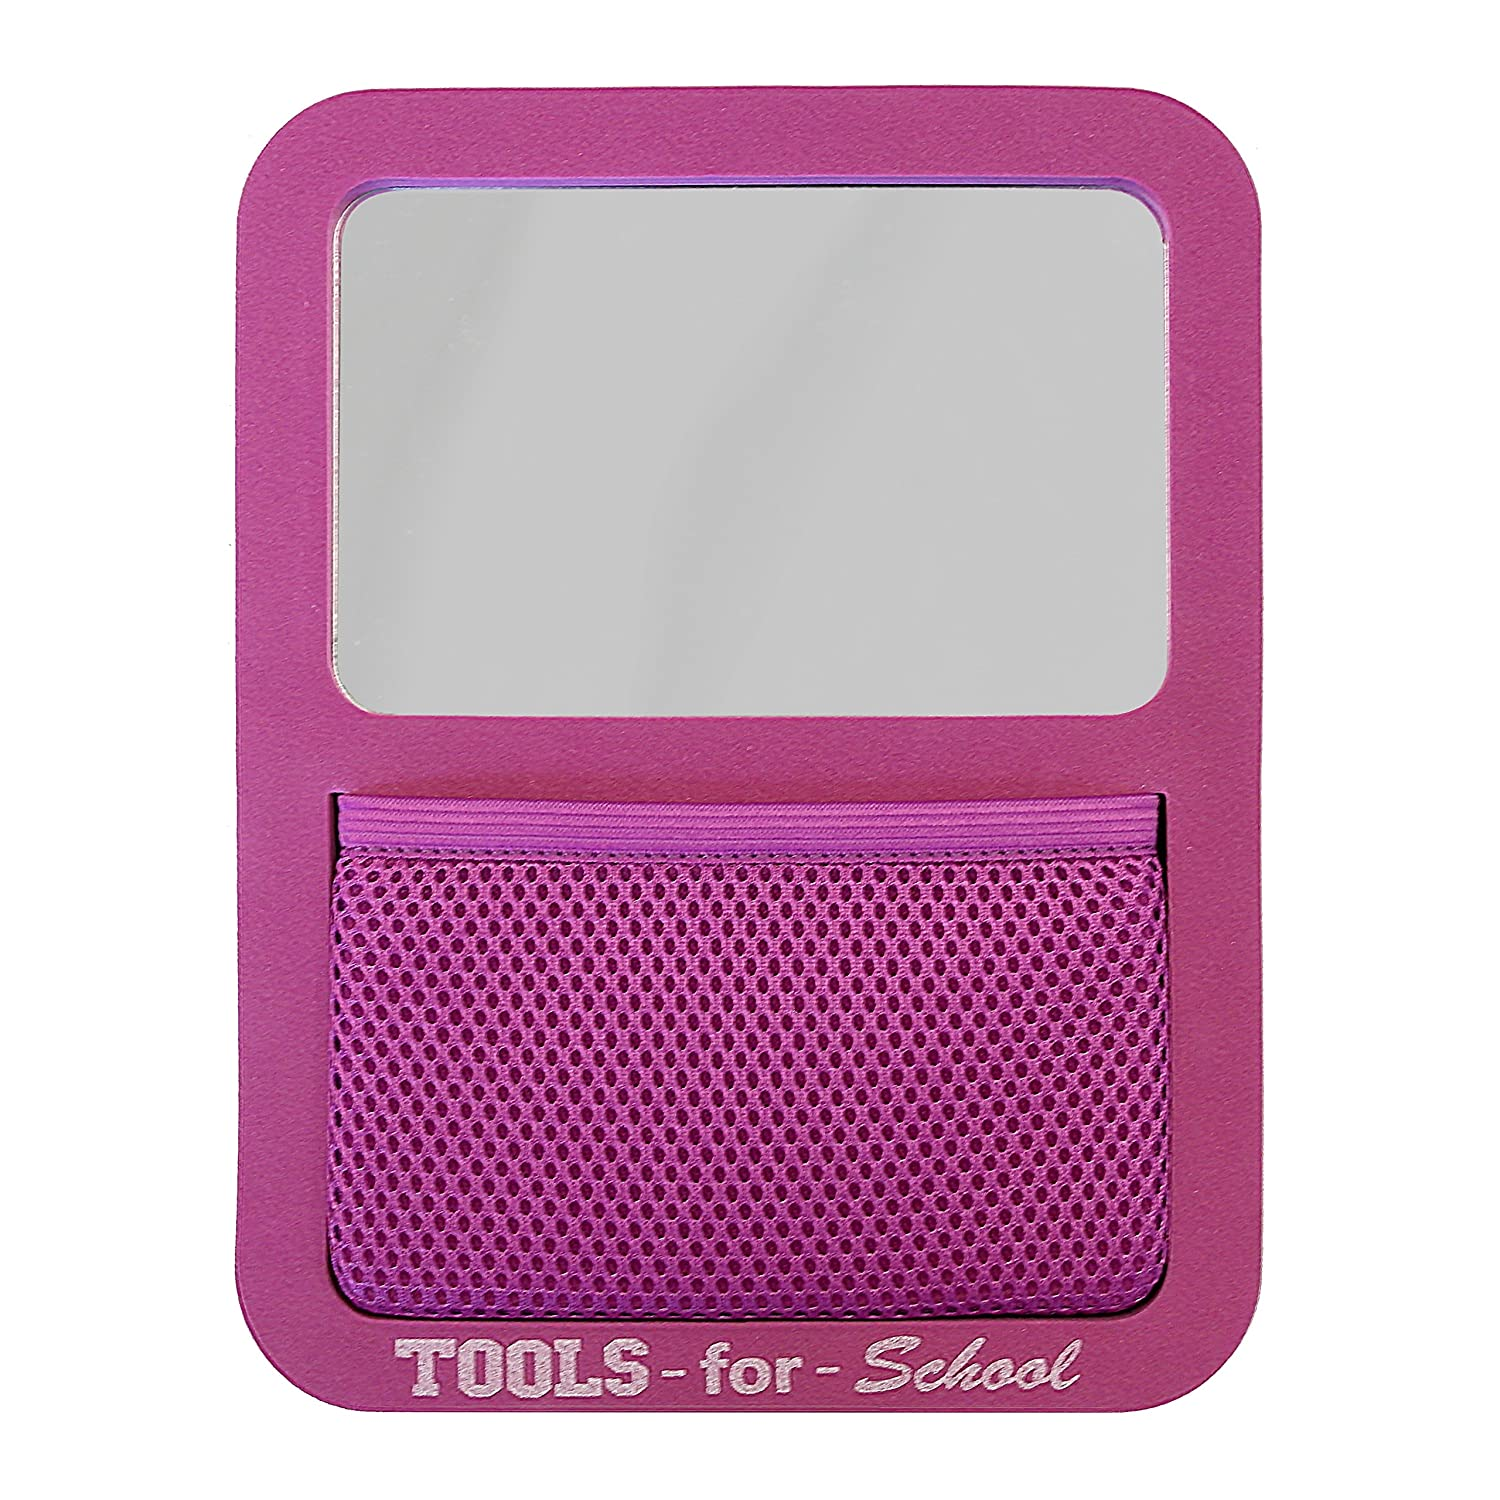 Tools for School Locker Accessories, Magnetic Locker Mirror with Elastic Mesh Pocket Organizer, Magenta Jaken